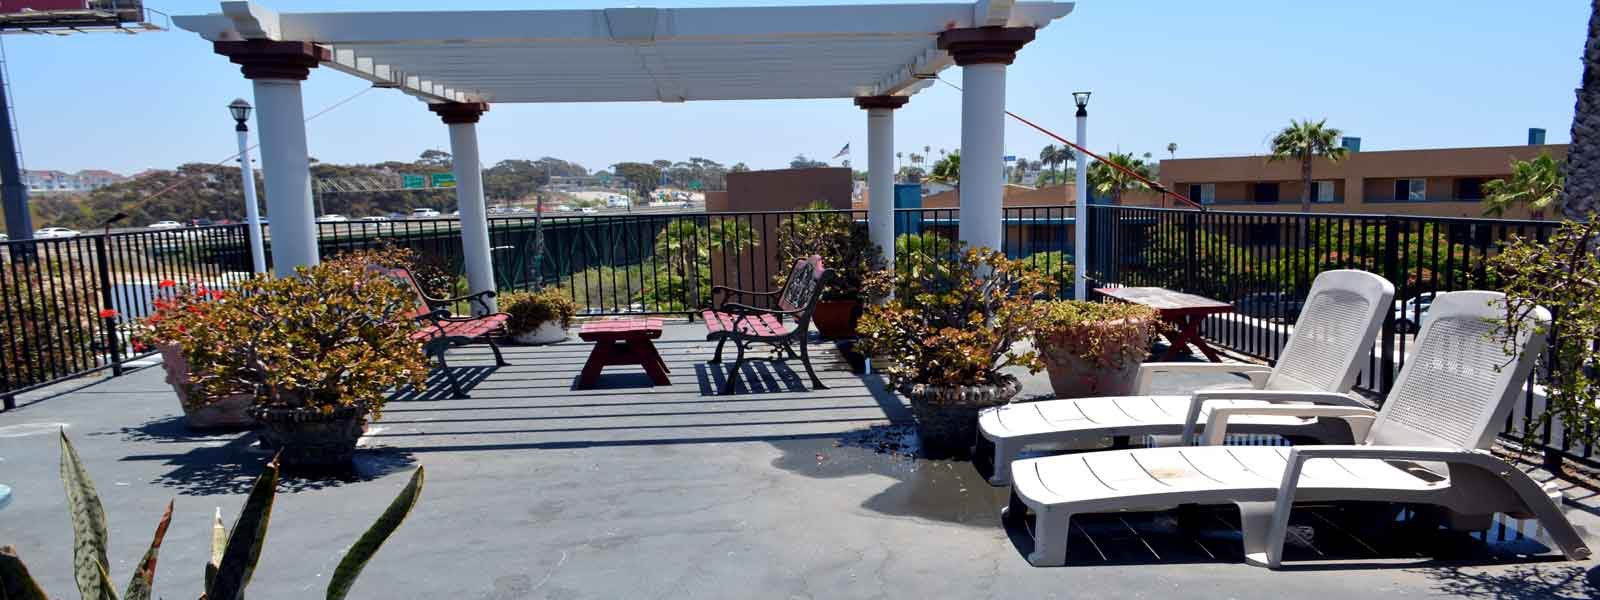 Motels in Oceanside Budget Discount 3 Star Rating